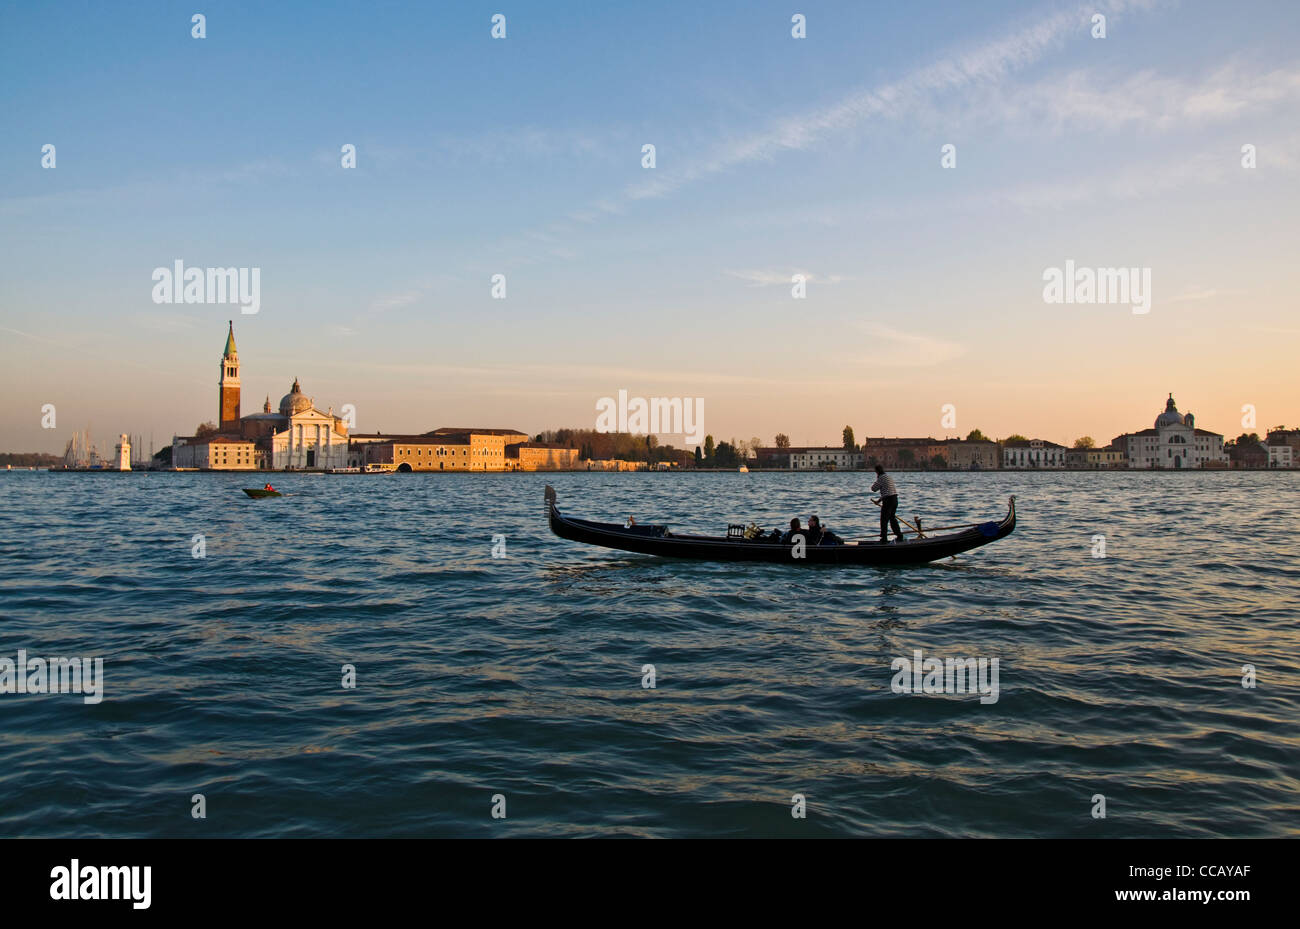 Gondola on Canale di San Marco in evening light - Stock Image